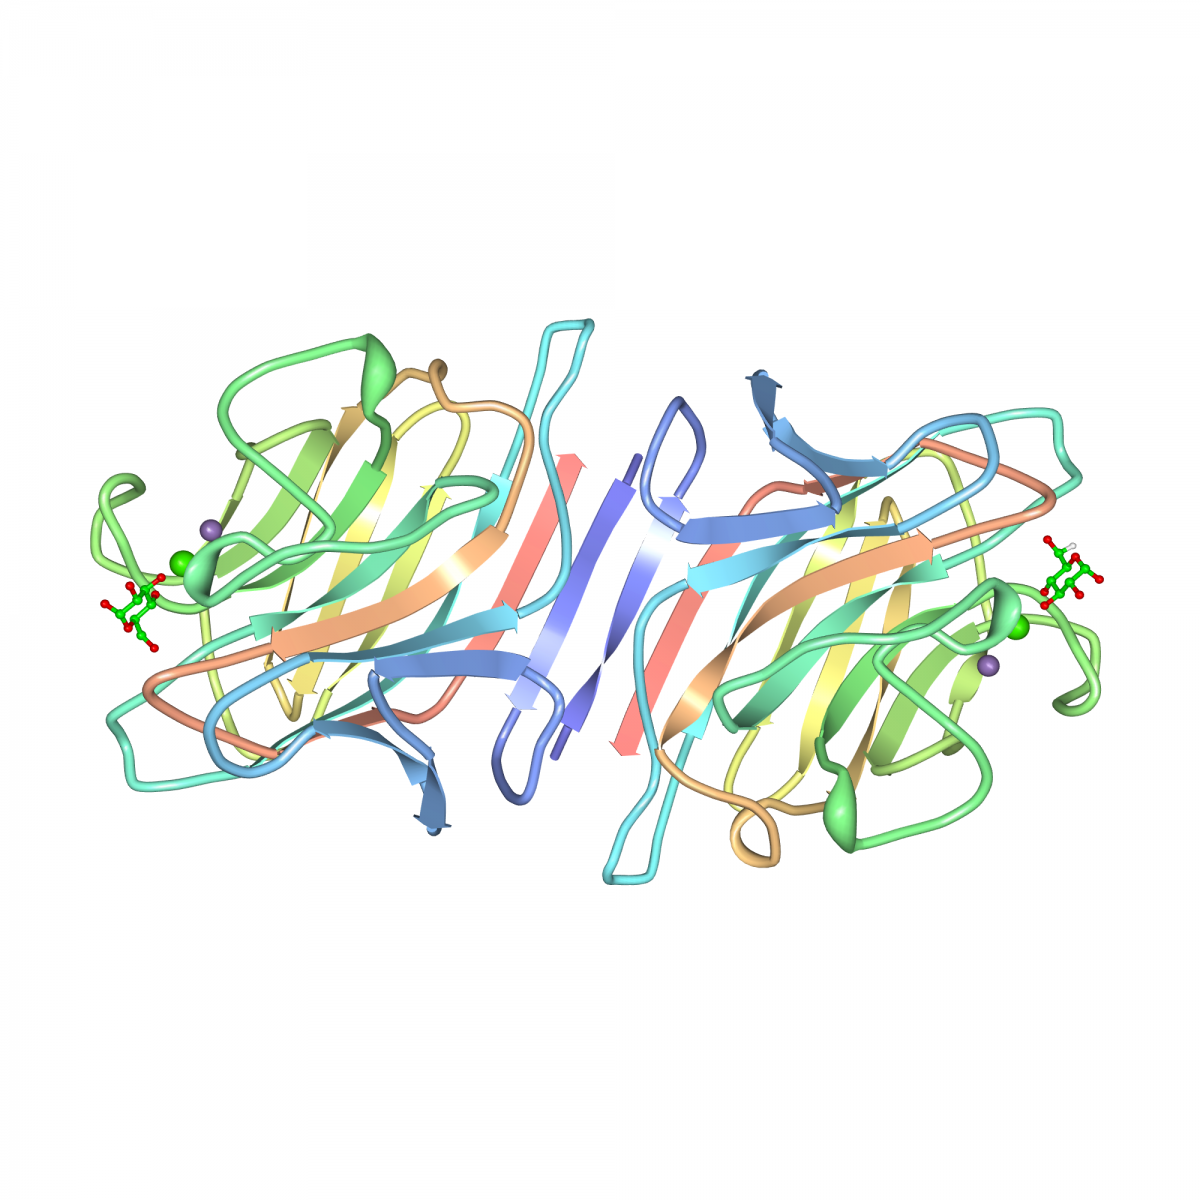 Crystal structure of PSA-D-glucopyranose complex